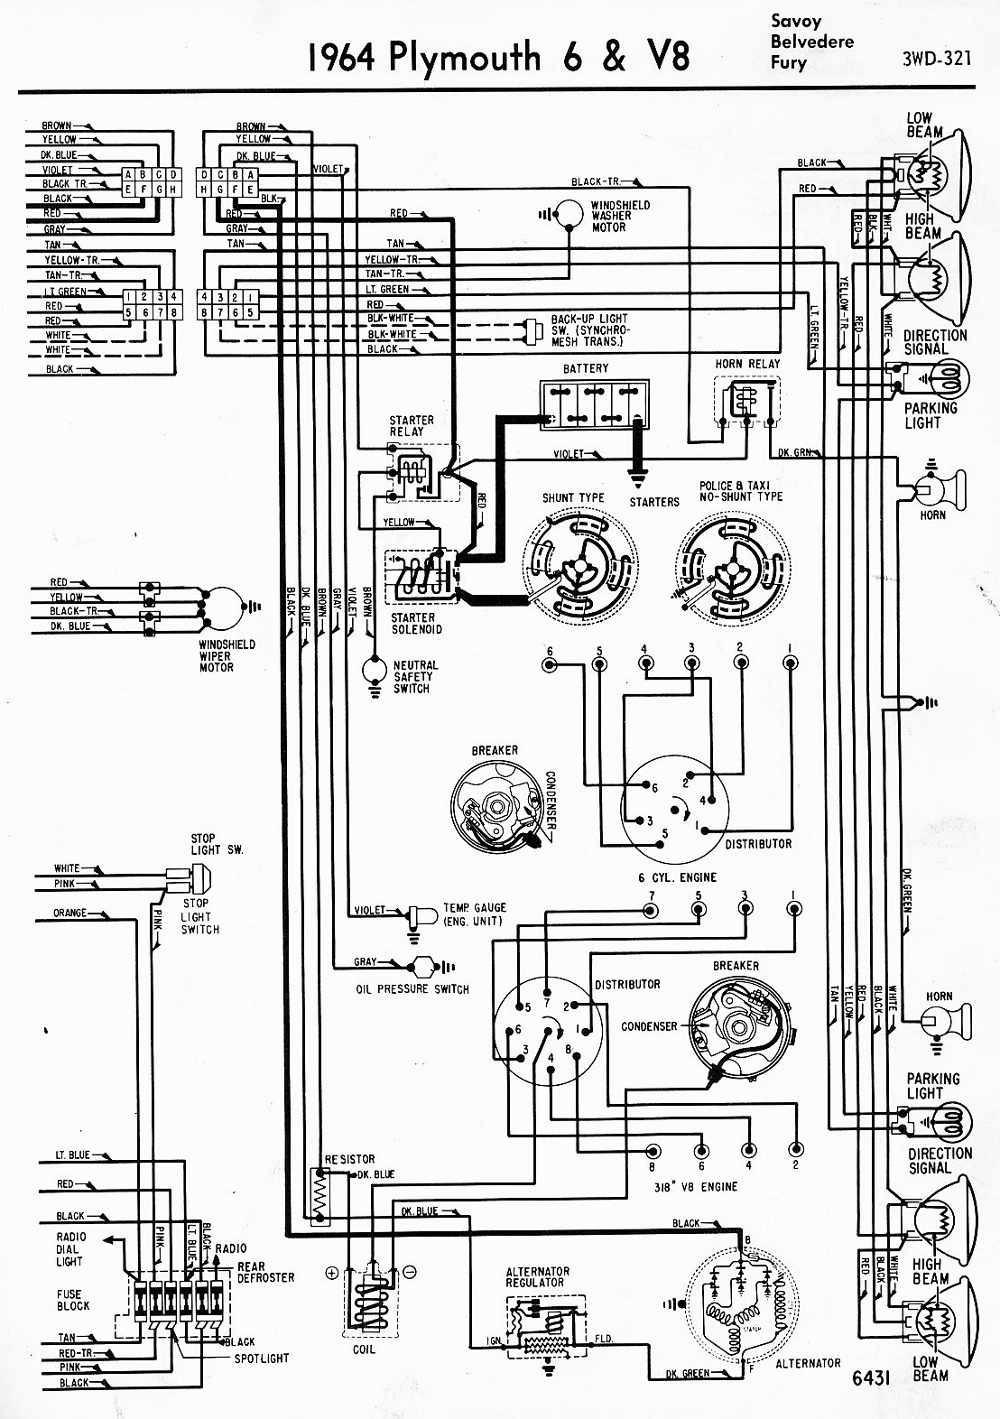 1969 Plymouth Fury Wiring Diagram Opinions About Ford Galaxie 1964 Sport 1967 Ii